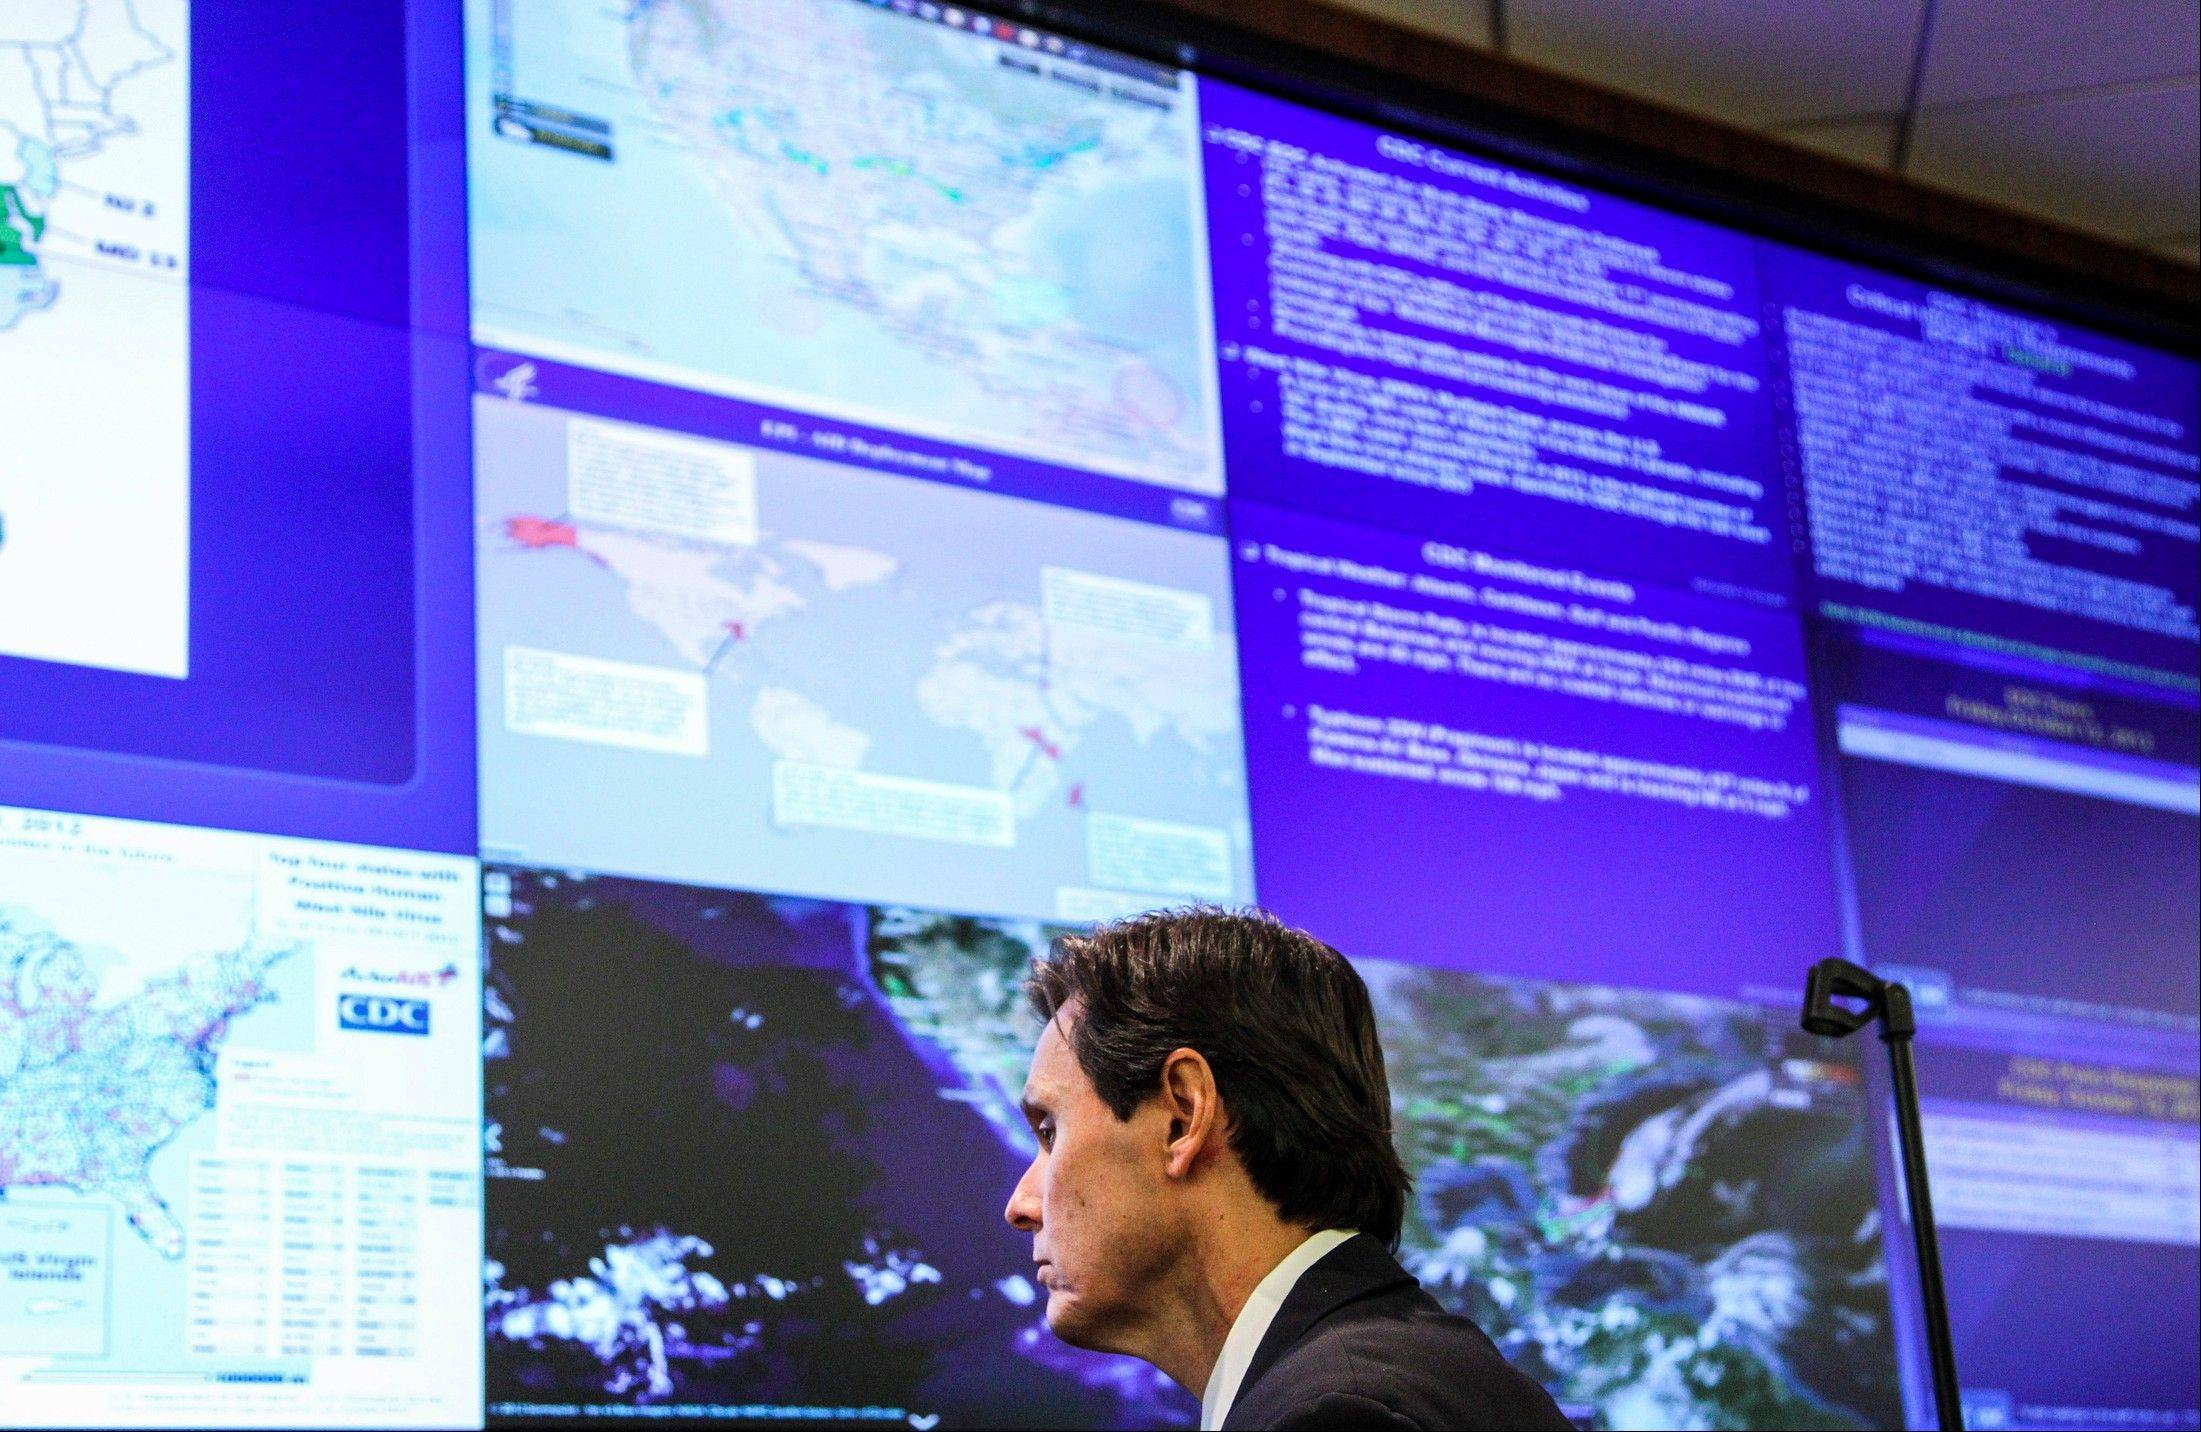 Dr. John Jernigan, the medical epidemiologist who is leading the investigative team, is seen during an interview at the Emergency Operations Center at the Centers for Disease Control and Prevention on Friday in Atlanta. The multistate meningitis outbreak that has resulted in 14 deaths is believed to have started at New England Compounding Center where a steroid injection shipment was contaminated with the fungus.